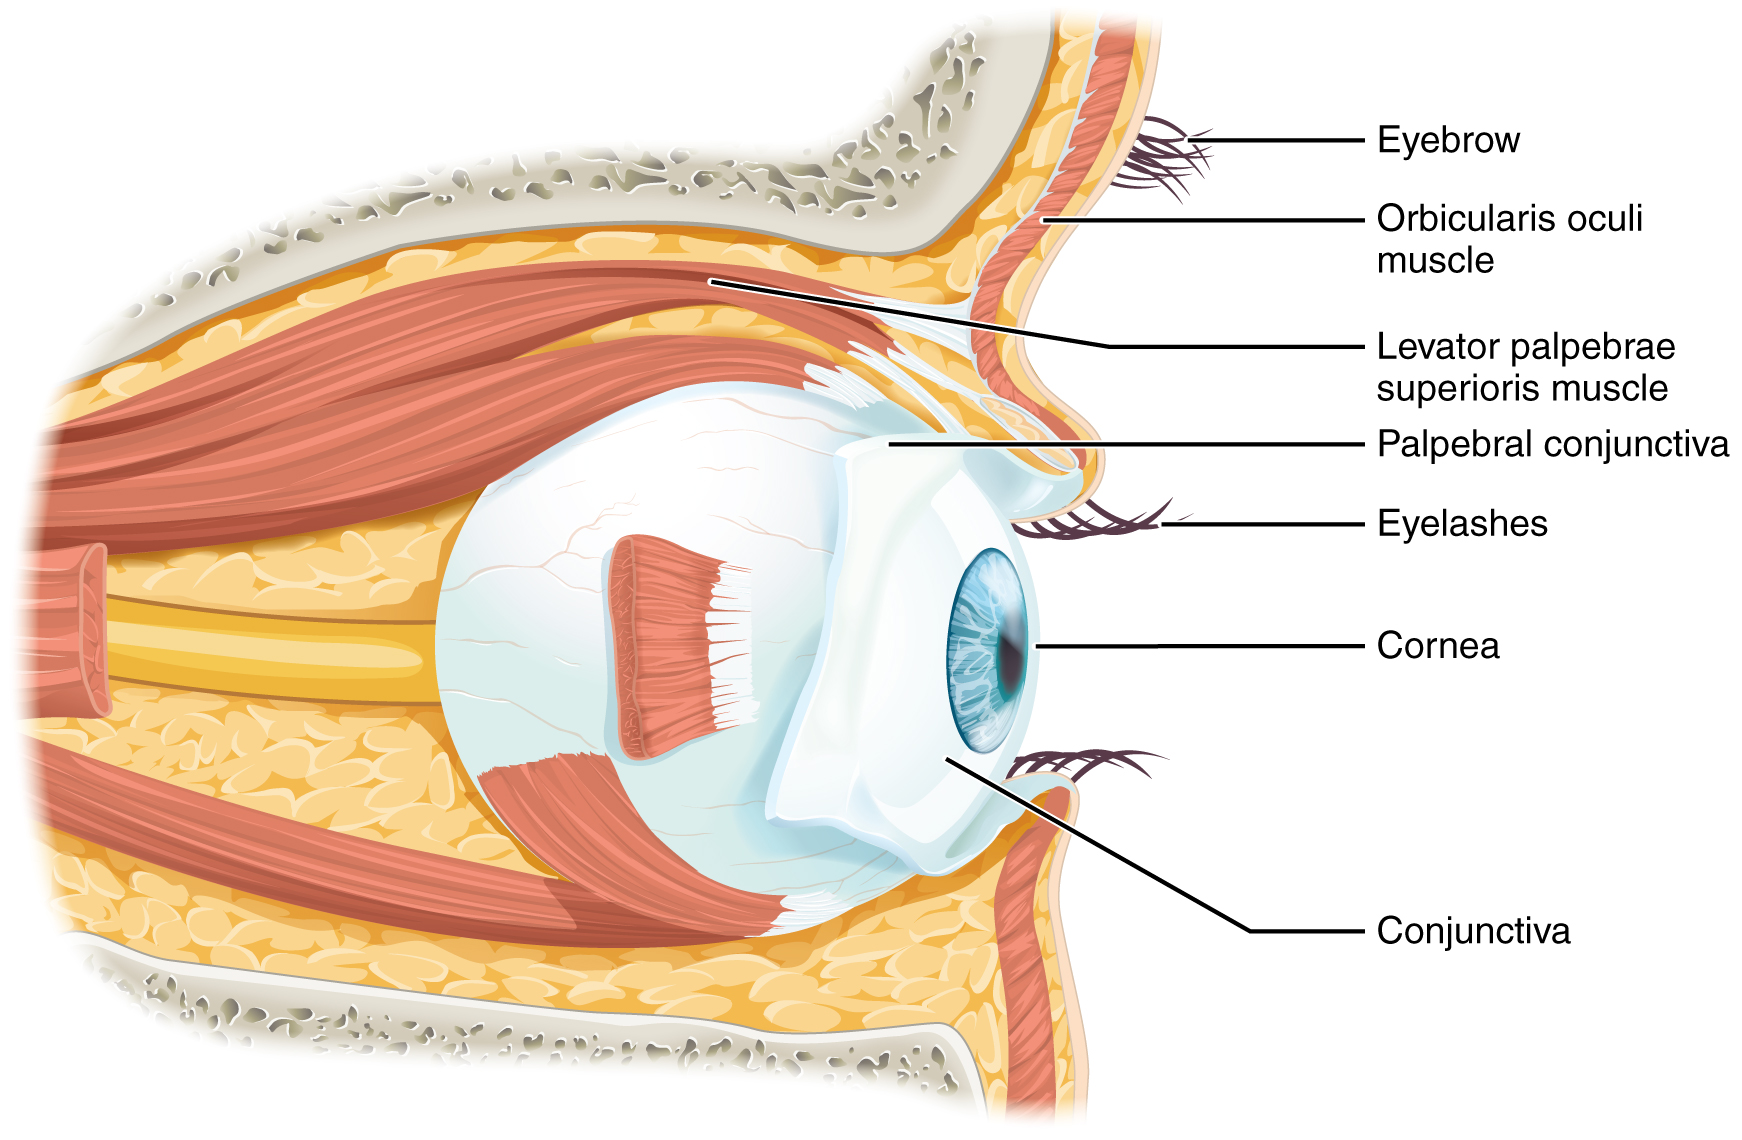 Sensory perception anatomy and physiology the eye is located within the orbit and surrounded by soft tissues that protect and support its function the orbit is surrounded by cranial bones of the ccuart Image collections